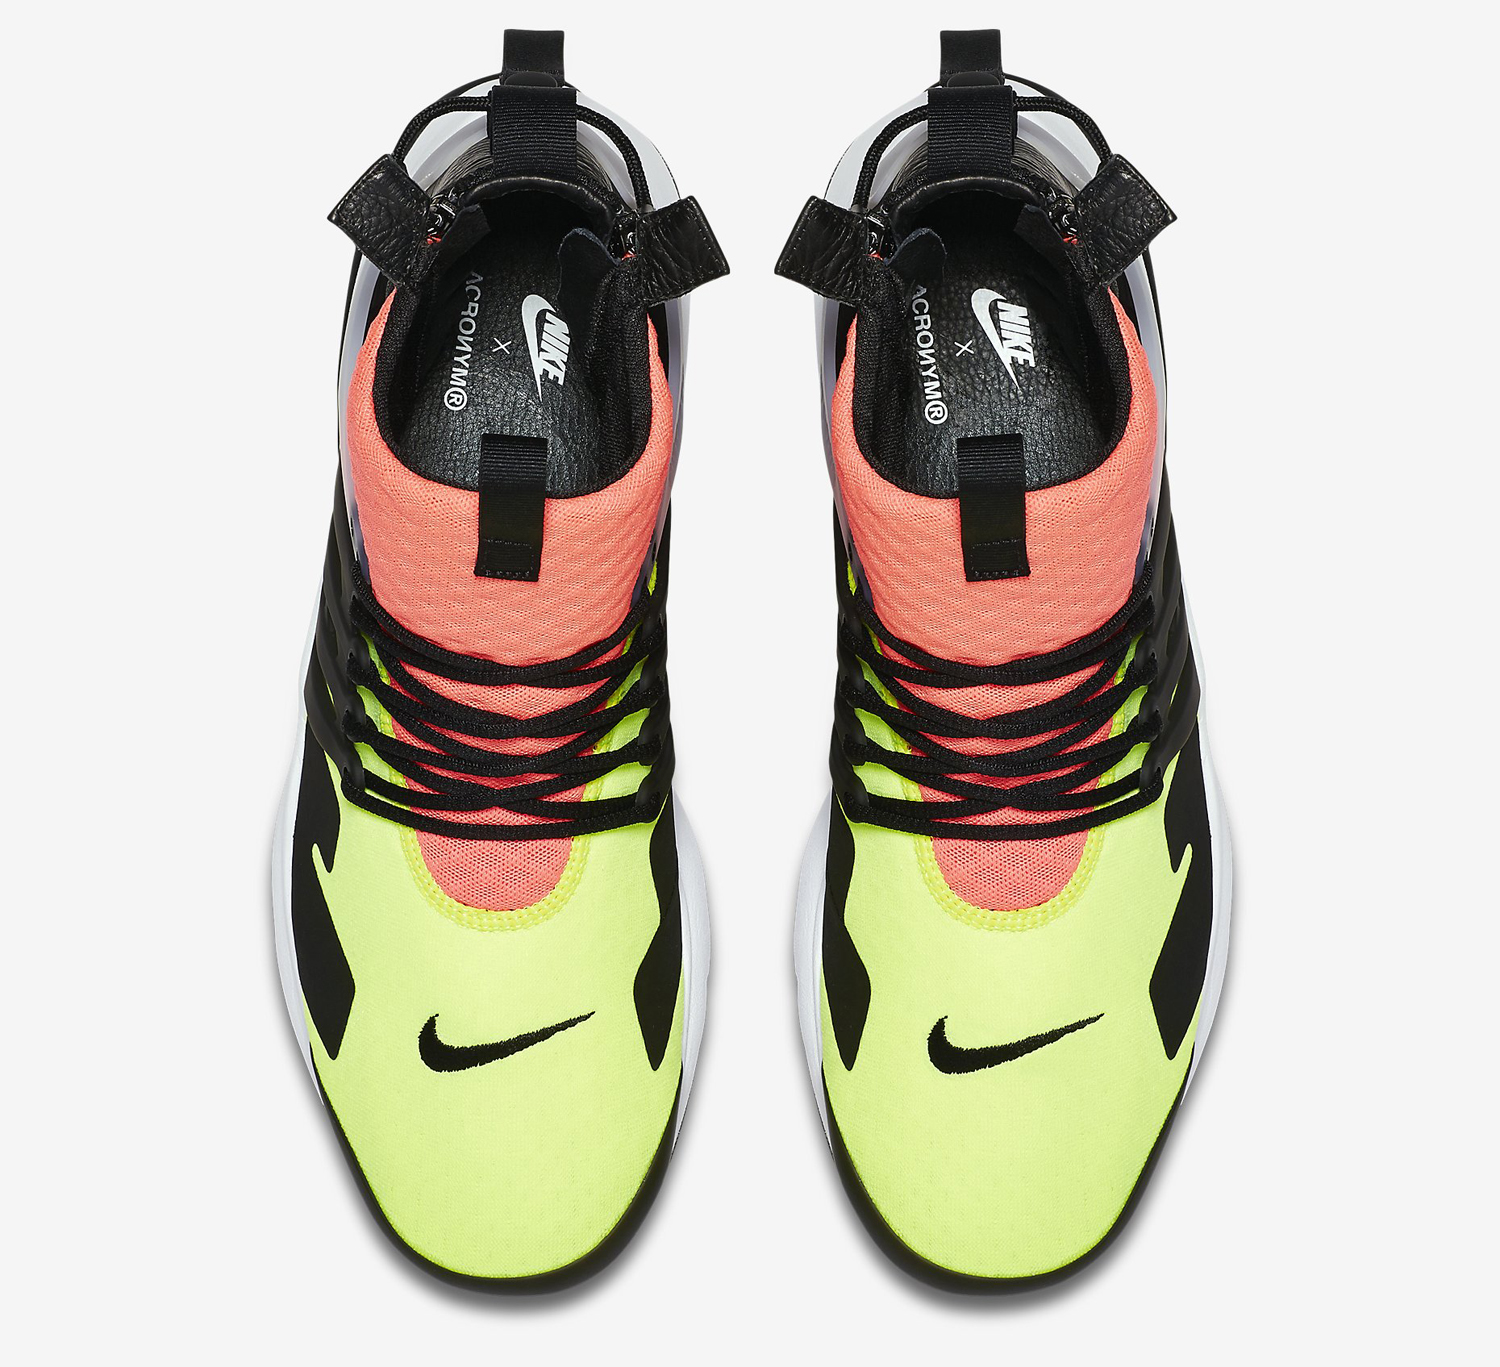 Acronym Nike Air Presto Hot Lava 844672-100 Top 0608533ebb